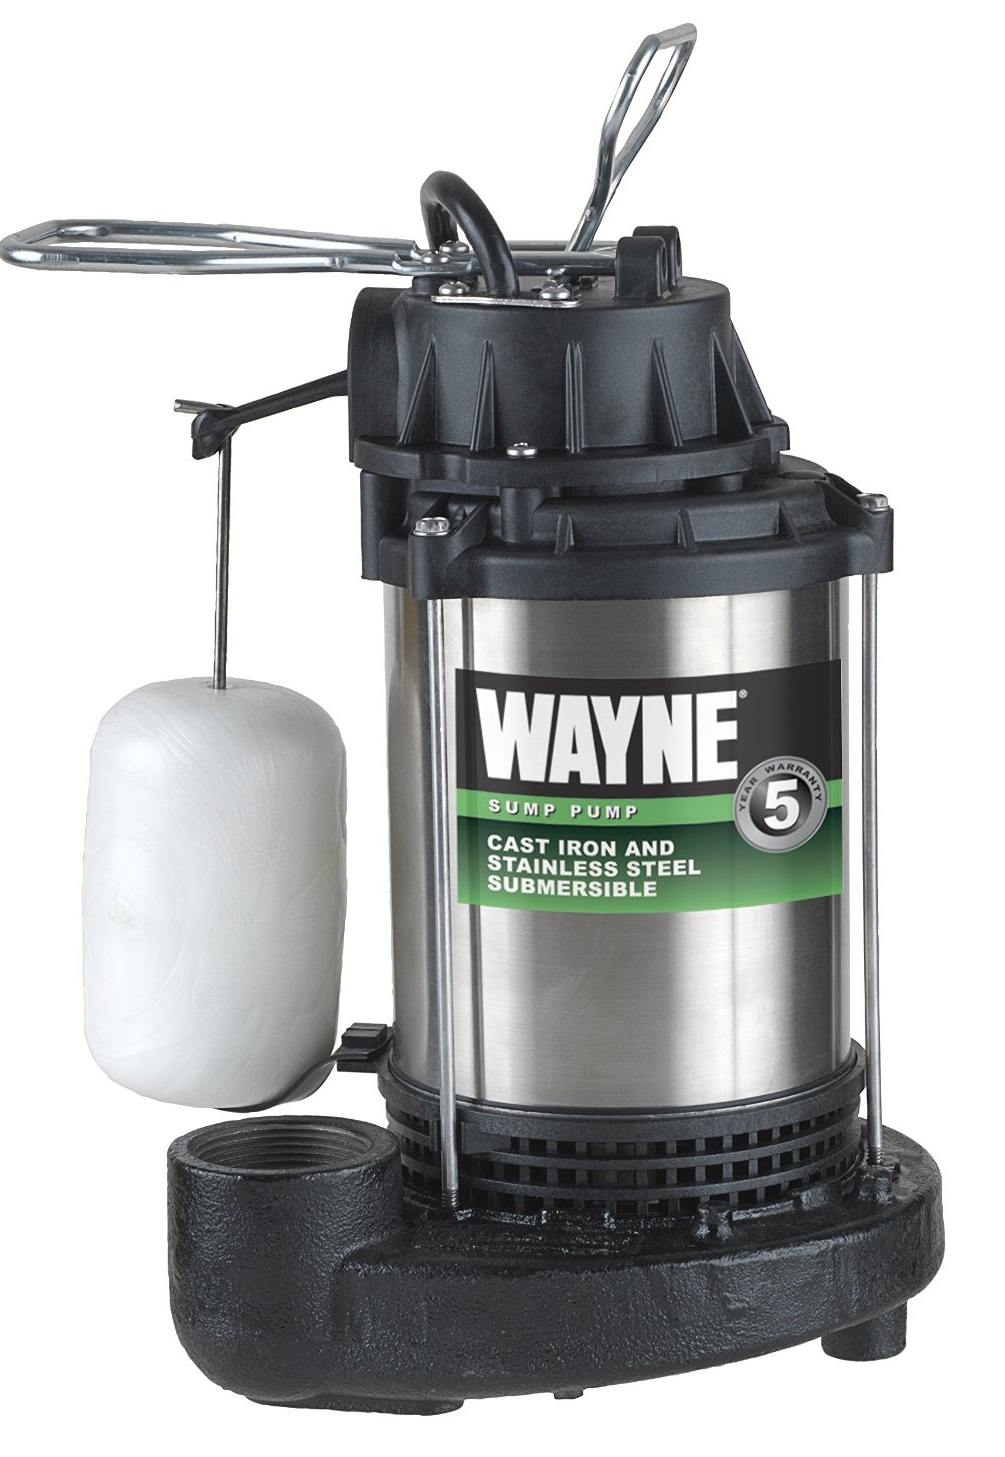 Wayne CDU980E 58321-WYN3 Submersible Sump Pump Review